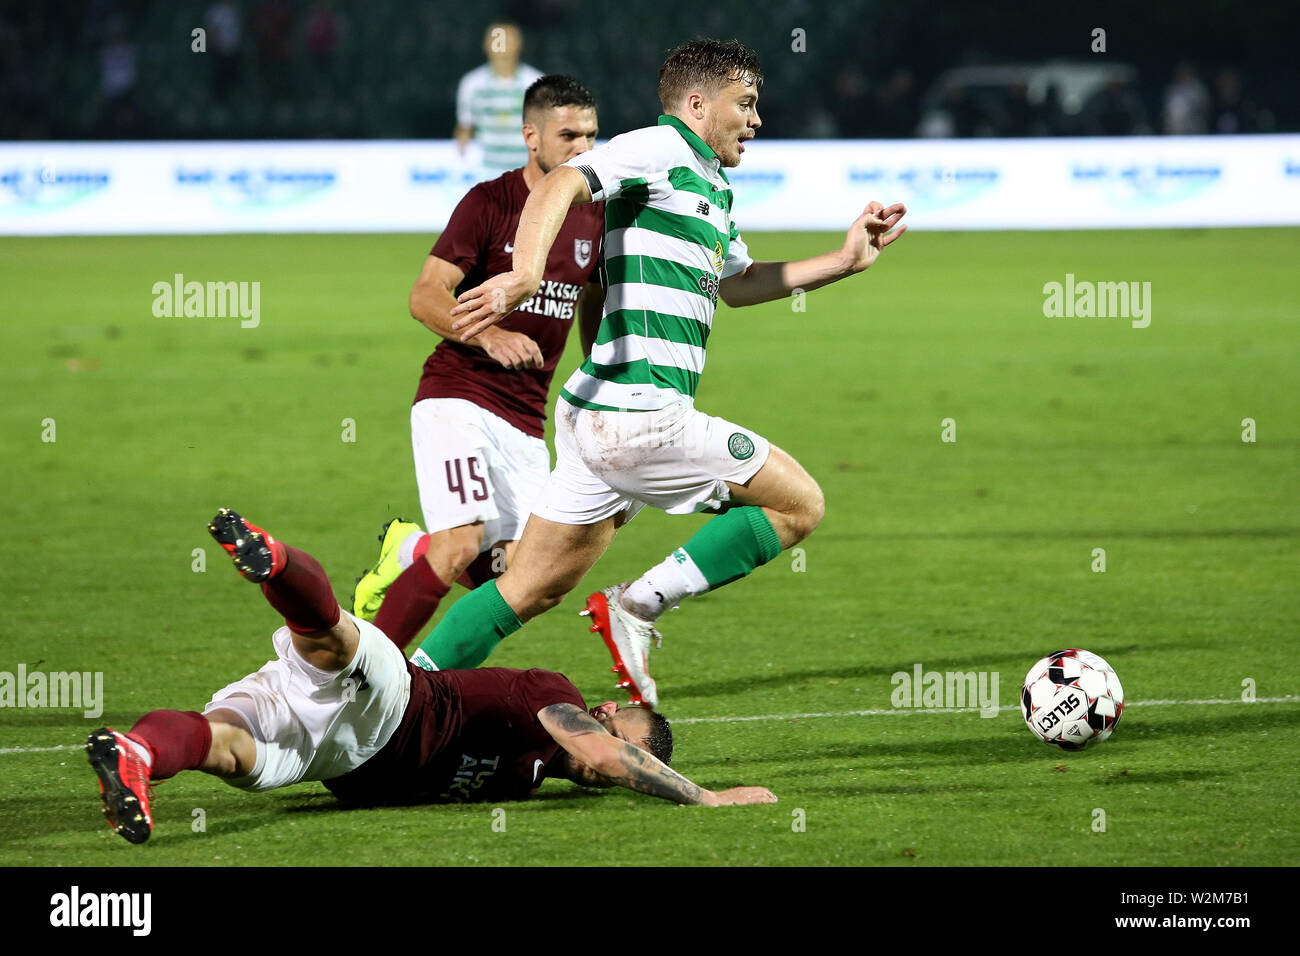 Sarajevo. 9th July, 2019. James Forrest of Celtic (up) competes against Dusan Hodzic (bottom) of Sarajevo during the First qualifying round match of UEFA Champions League between Sarajevo Bosnia and Herzegovina (BiH) and Celtic Scotland in Sarajevo, Bosnia and Herzegovina on July 9, 2019. Credit: Nedim Grabovica/Xinhua/Alamy Live News - Stock Image